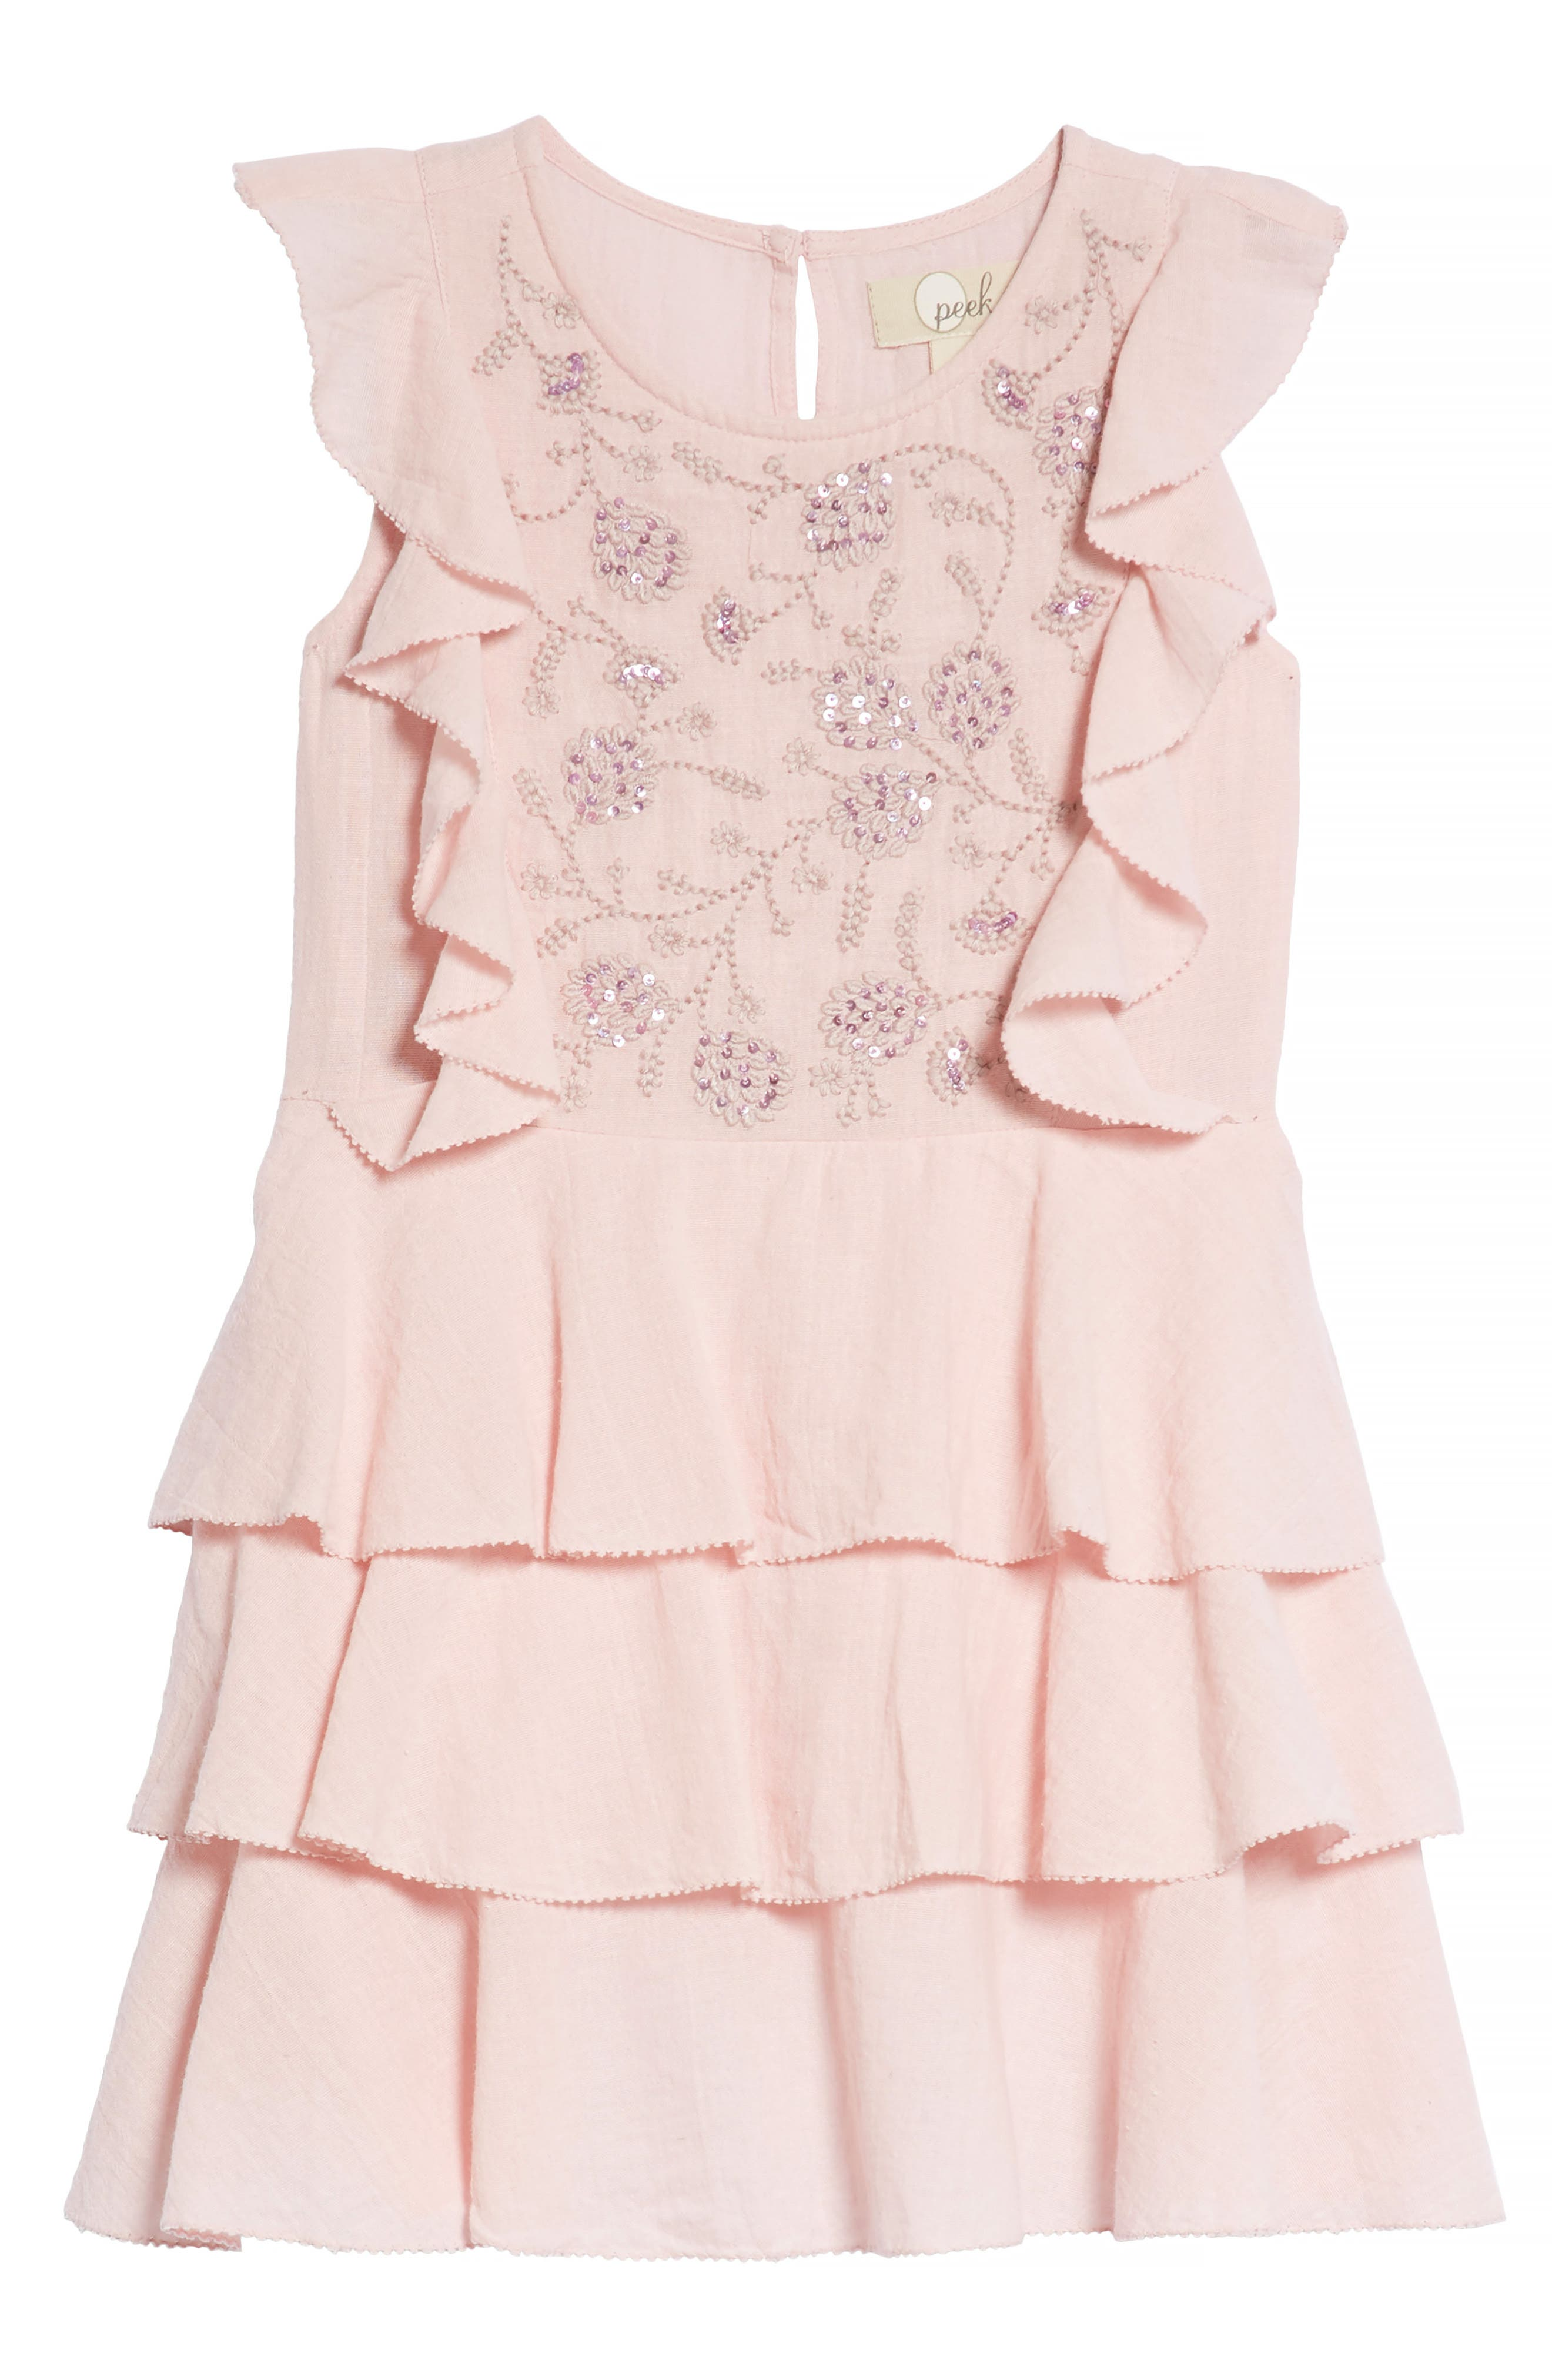 Madeline Tiered Dress,                         Main,                         color,